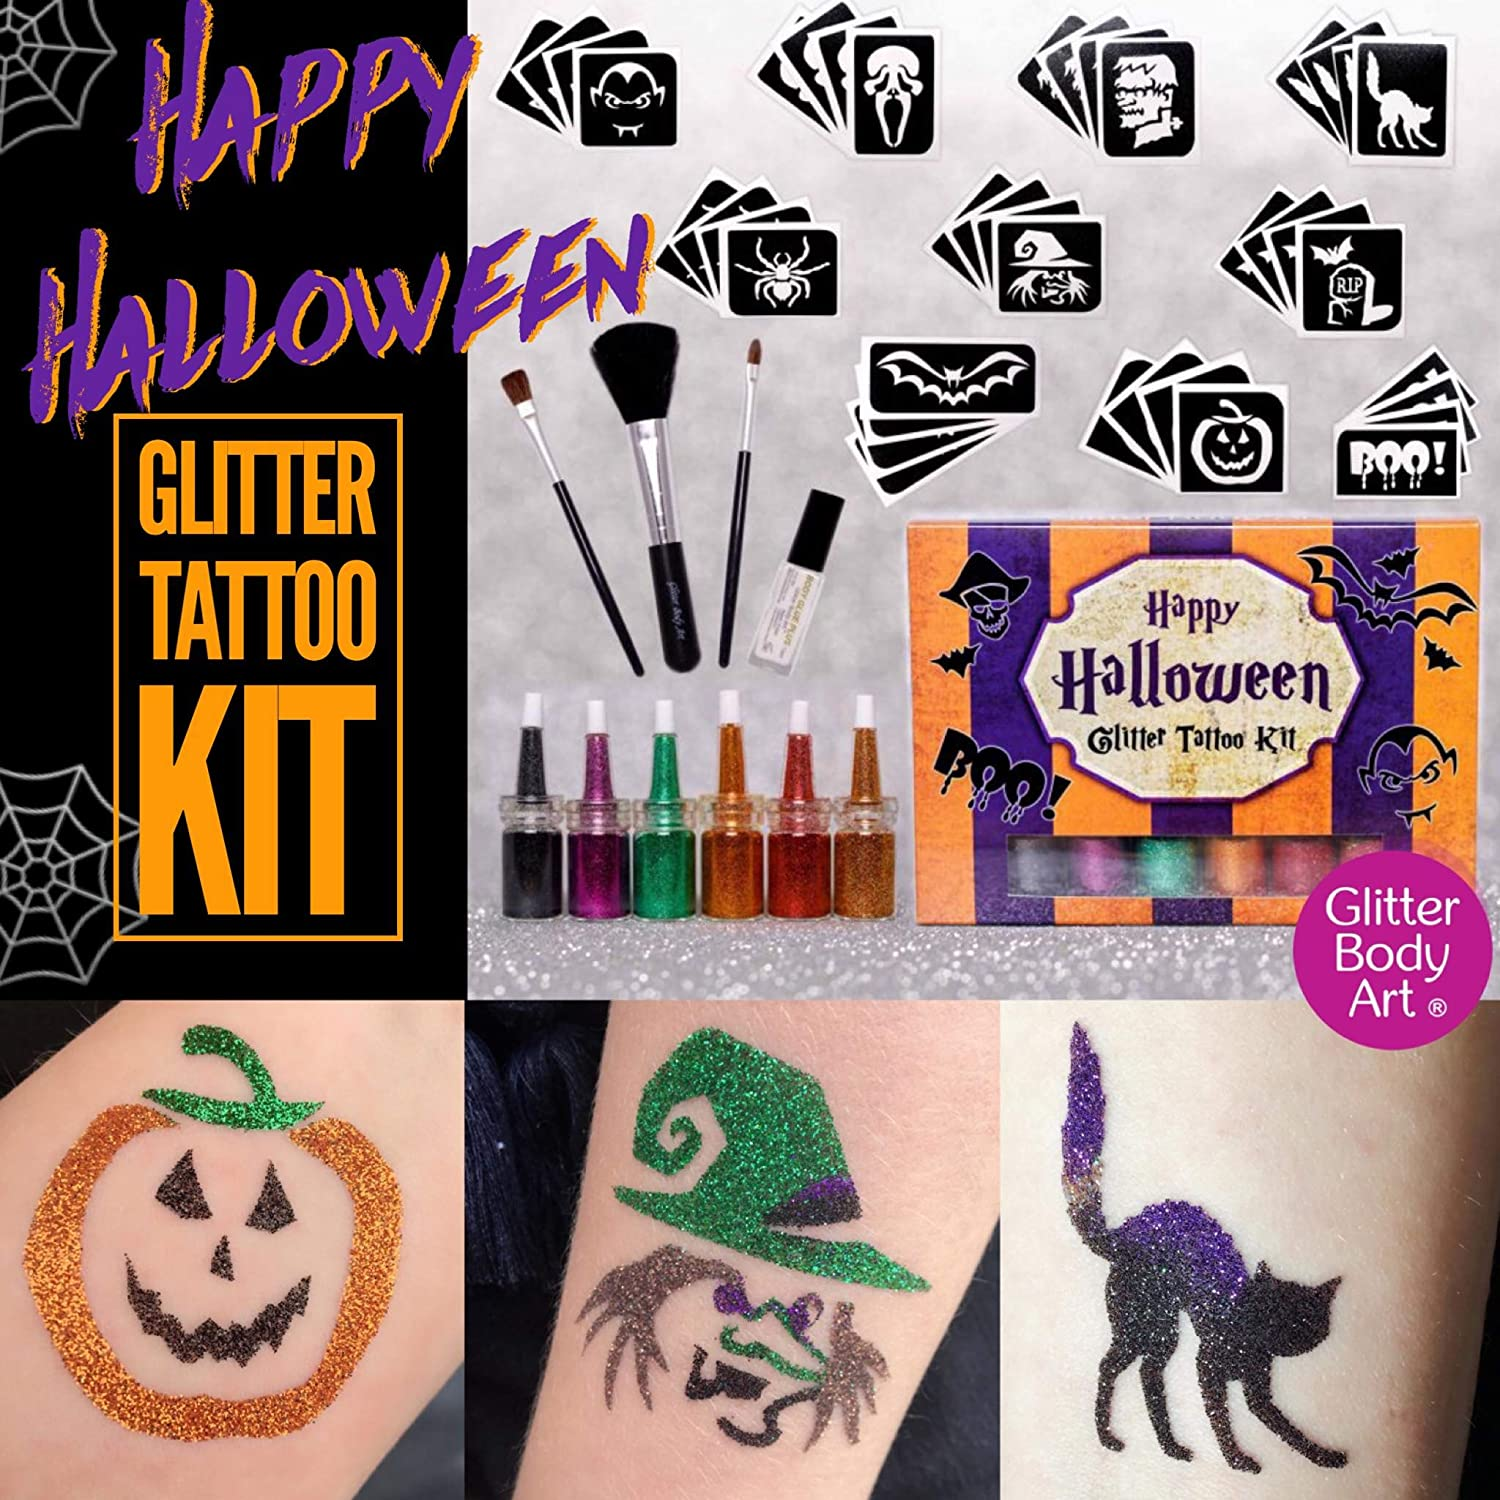 Kit de tatuaje de purpurina para Halloween: Amazon.es: Juguetes y ...